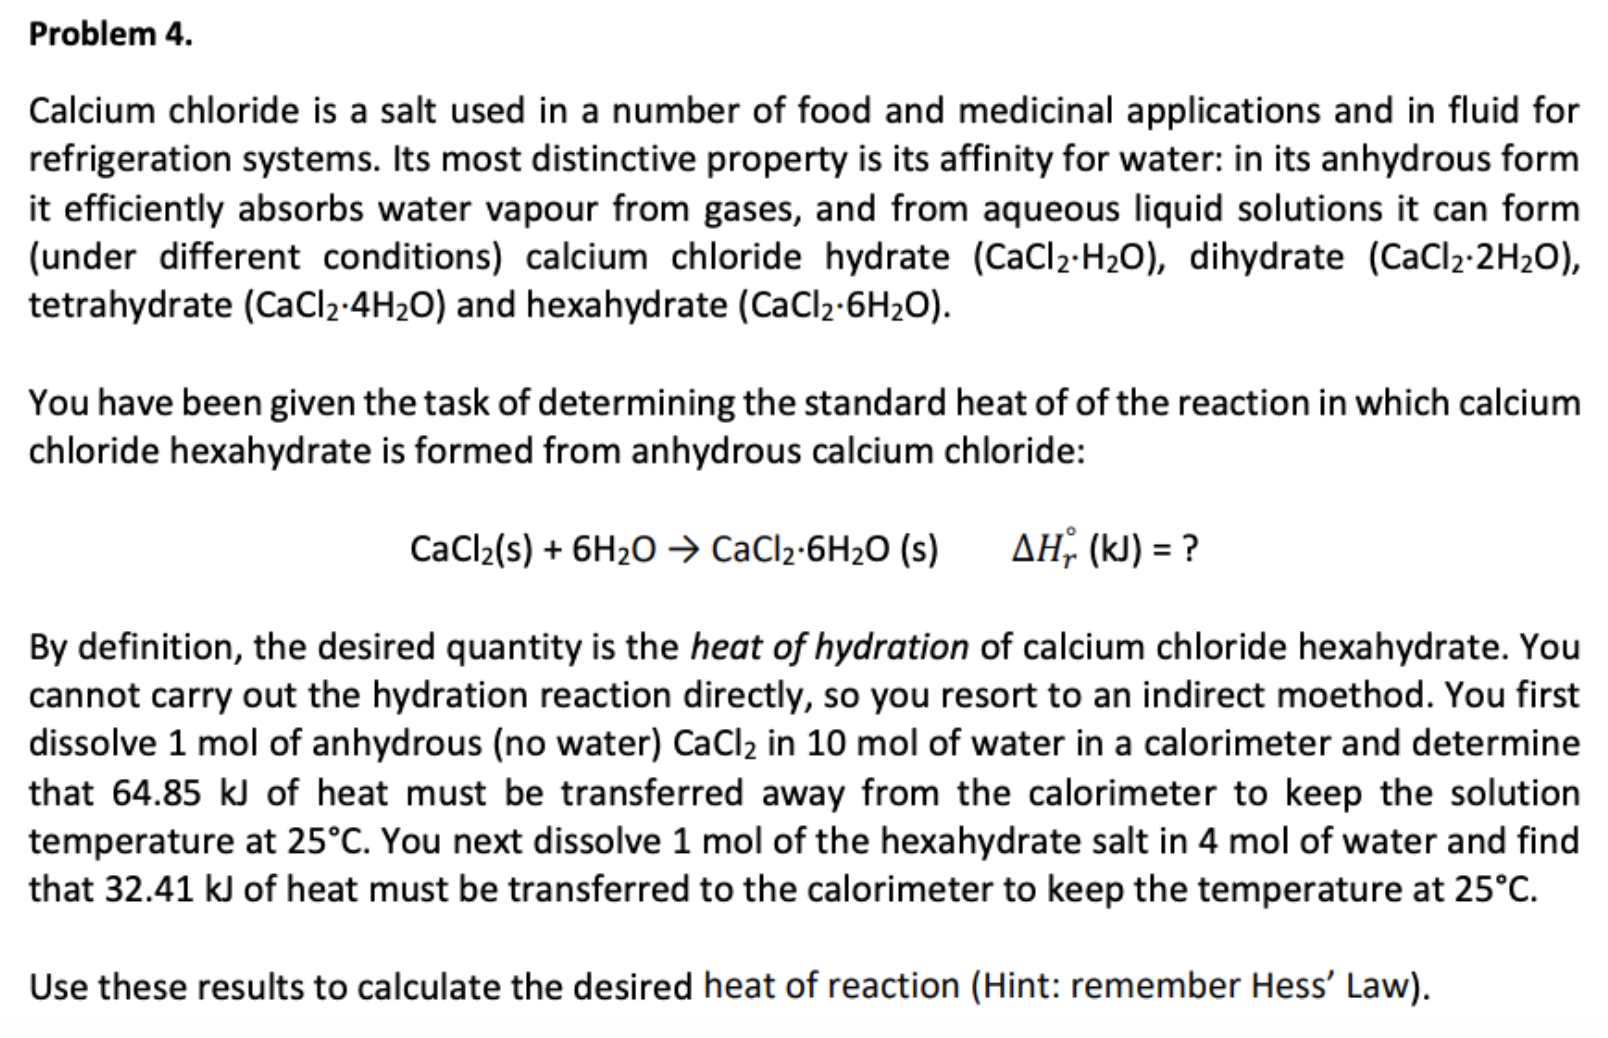 Problem 4. Calcium chloride is a salt used in a number of food and medicinal applications and in fluid for refrigeration systems. Its most distinctive property is its affinity for water: in its anhydrous form it efficiently absorbs water vapour from gases, and from aqueous liquid solutions it can form (under different conditions) calcium chloride hydrate (CaCl2-H20), dihydrate (CaCl2 2H2O), tetrahydrate (CaCl2-4H2O) and hexahydrate (CaCl2-6H2O). You have been given the task of determining the standard heat of of the reaction in which calcium chloride hexahydrate is formed from anhydrous calcium chloride: AH (k) ? CaCl2(s)6H20 CaCl2-6H20 (s) By definition, the desired quantity is the heat of hydration of calcium chloride hexahydrate. You cannot carry out the hydration reaction directly, so you resort to an indirect moethod. You first dissolve 1 mol of anhydrous (no water) CaCl2 in 10 mol of water in a calorimeter and determine that 64.85 kJ of heat must be transferred away from the calorimeter to keep the solution temperature at 25°C. You next dissolve 1 mol of the hexahydrate salt in 4 mol of water and find that 32.41 kJ of heat must be transferred to the calorimeter to keep the temperature at 25°C Use these results to calculate the desired heat of reaction (Hint: remember Hess' Law)